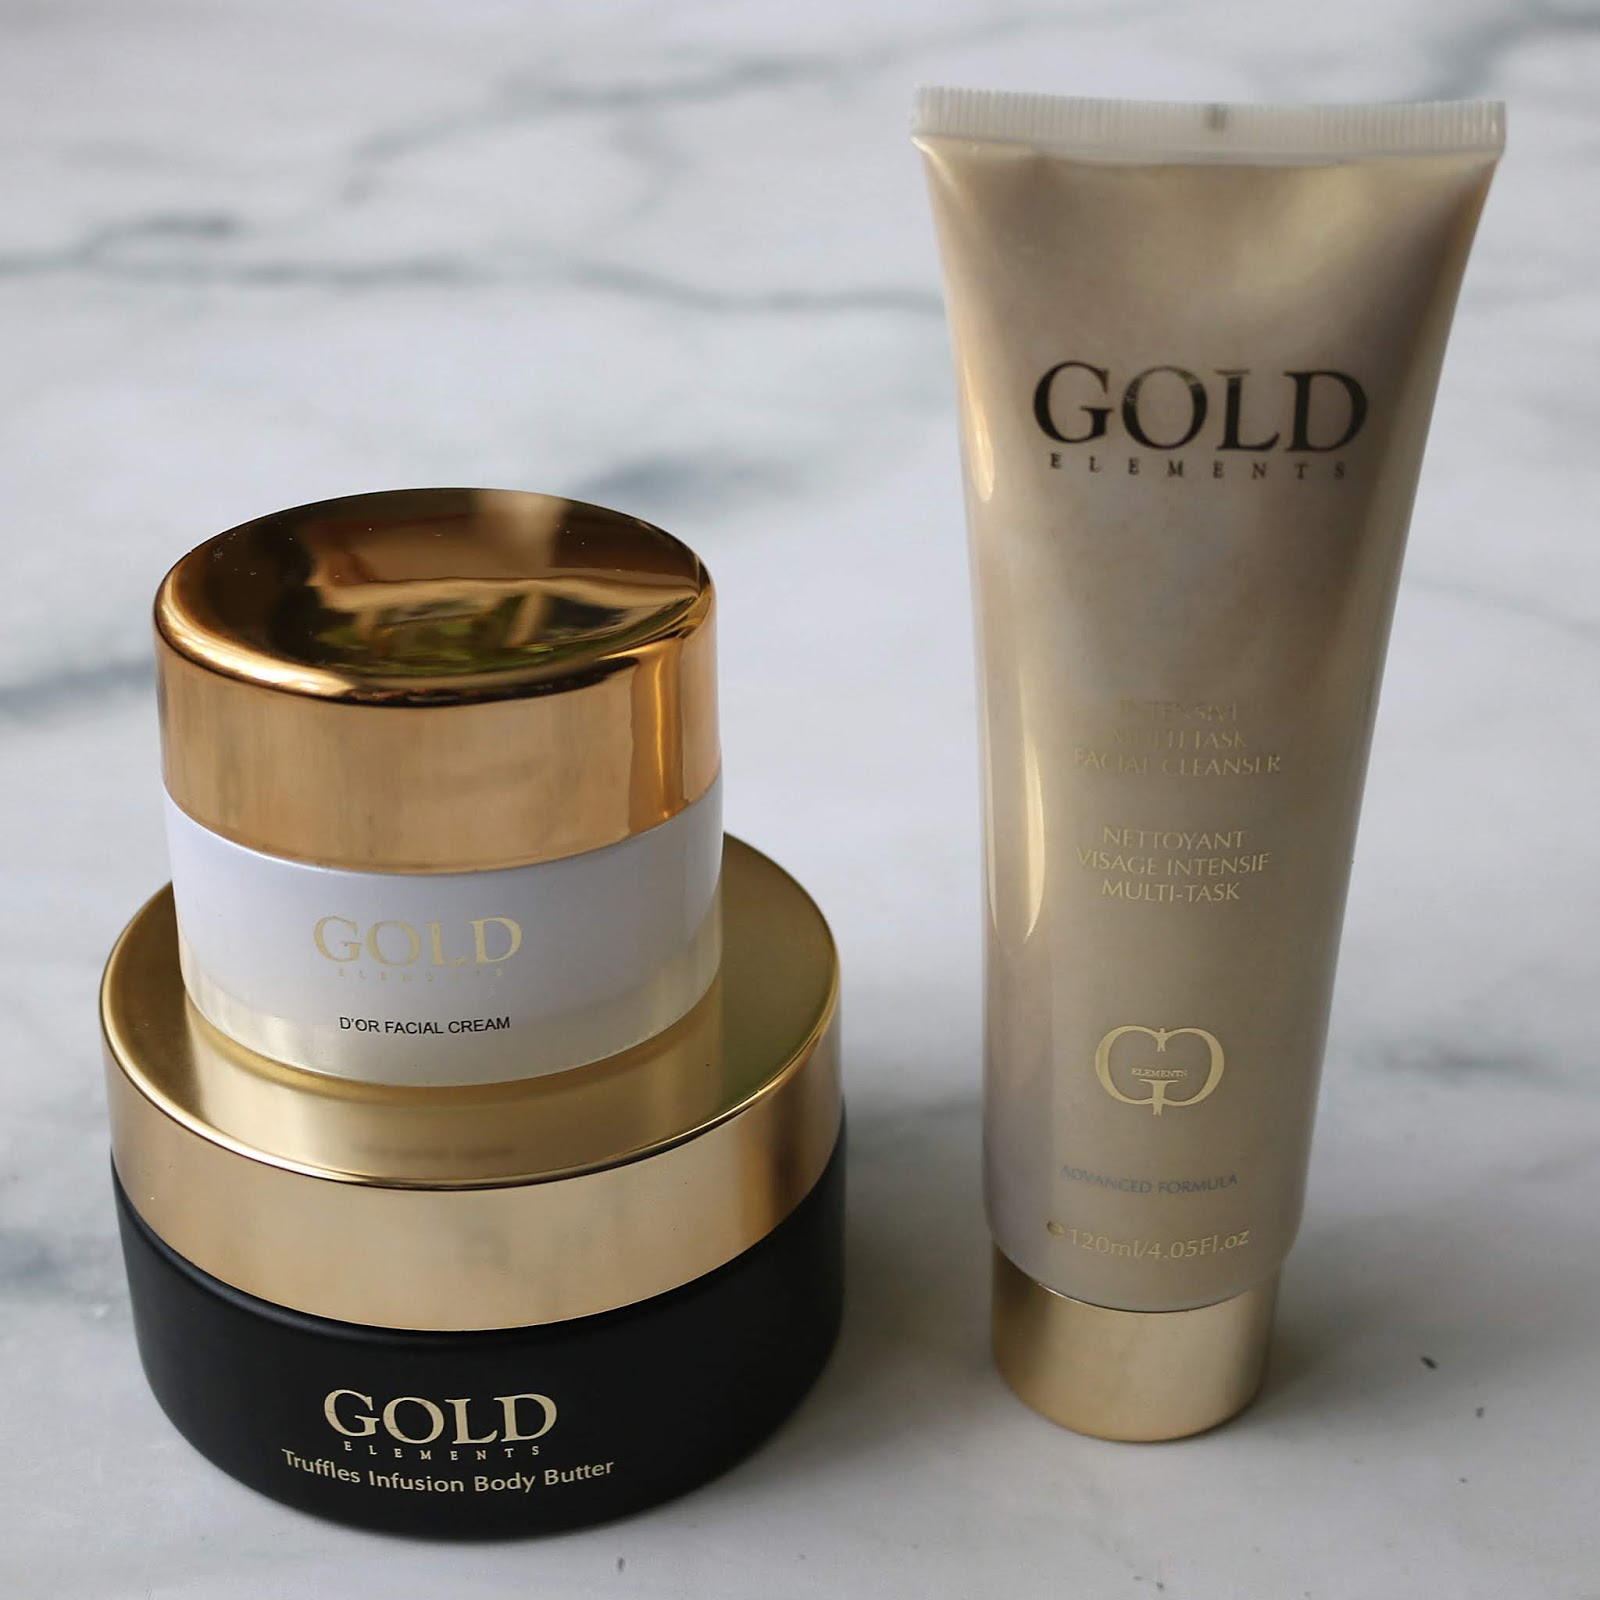 Gold Elements Intensive Multi Task Facial Cleanser D'Or Facial Cream Truffle Infusion Body Butter